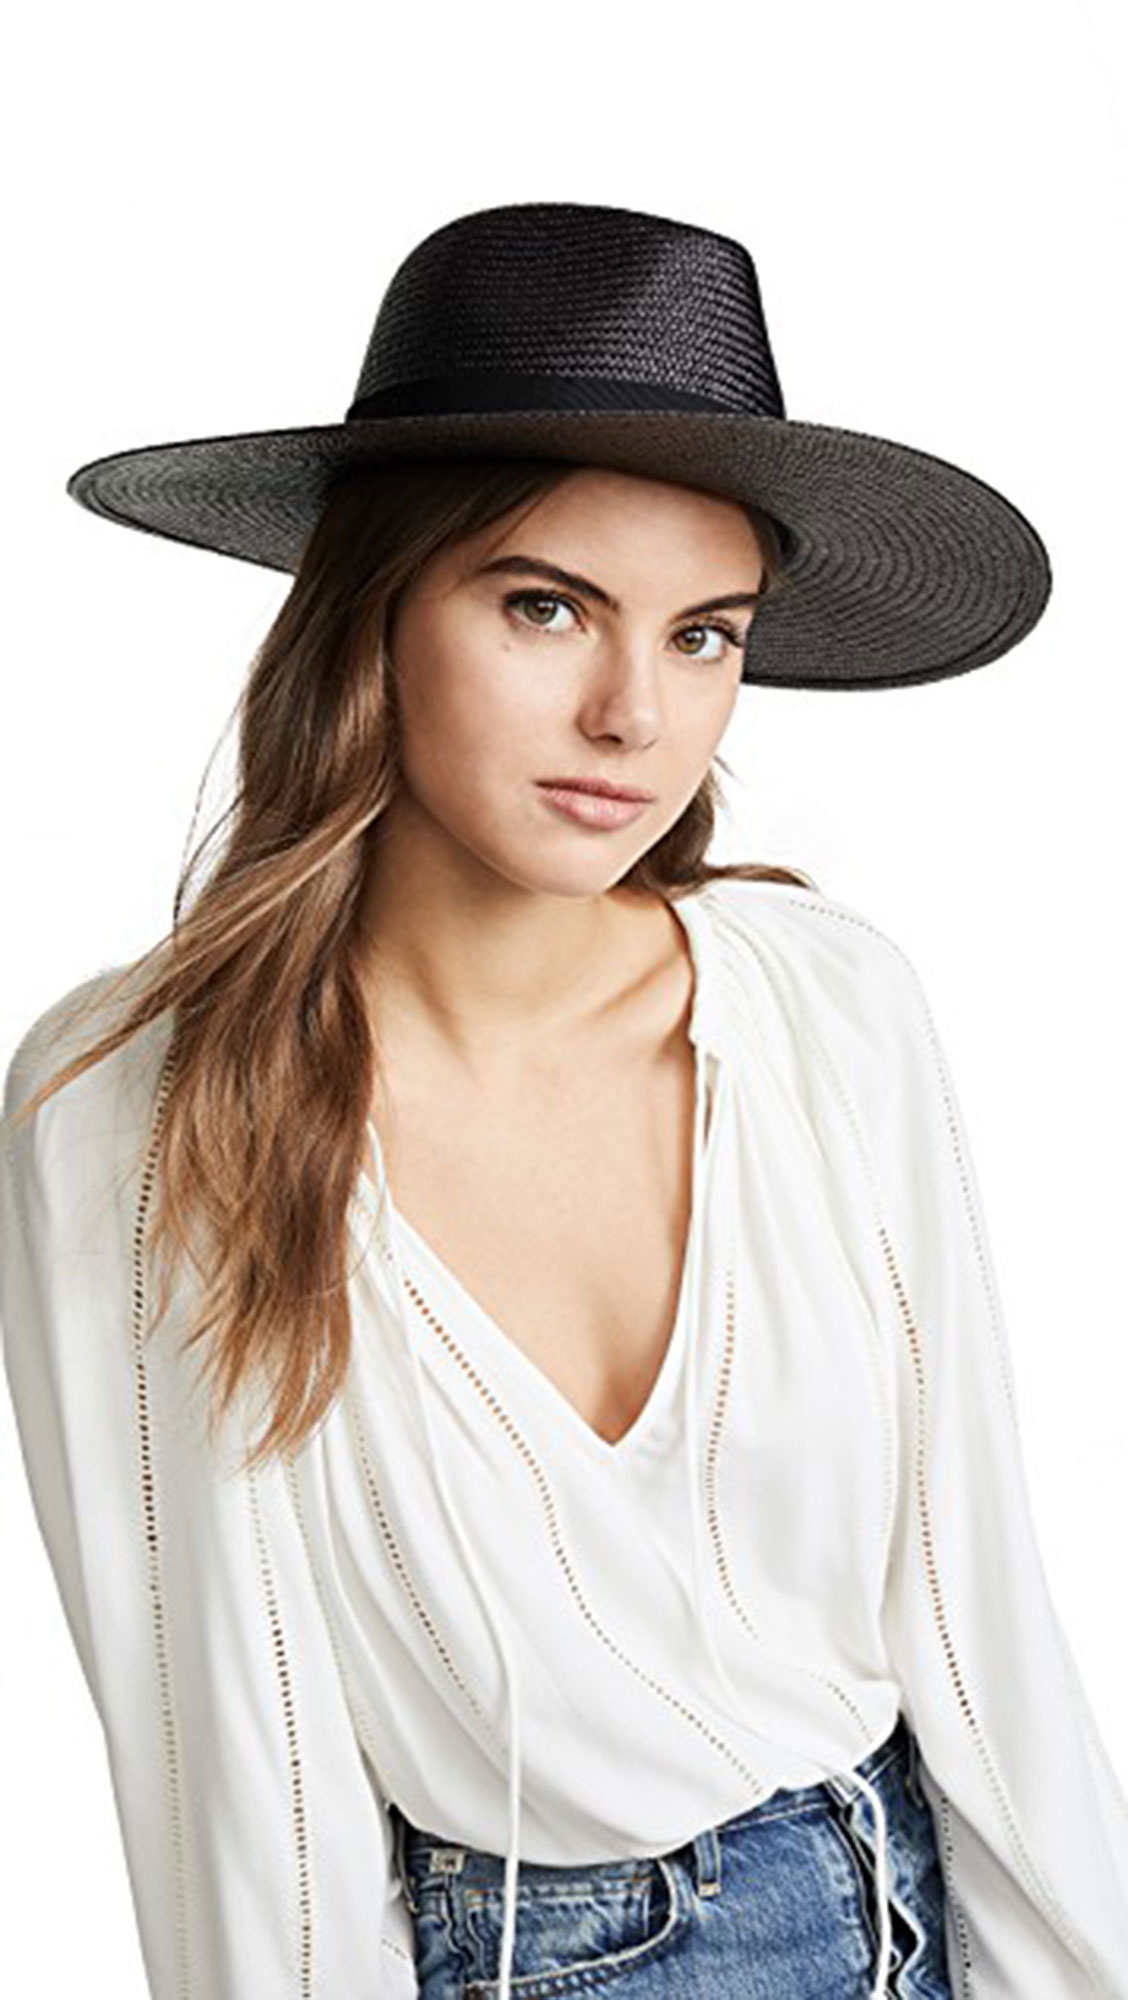 7 Black Panama Hats Inspired by Gigi Hadid¹s Œ90s Wedding Style - We love the subtle sheen of this grosgrain-accented design. $250, shopbop.com